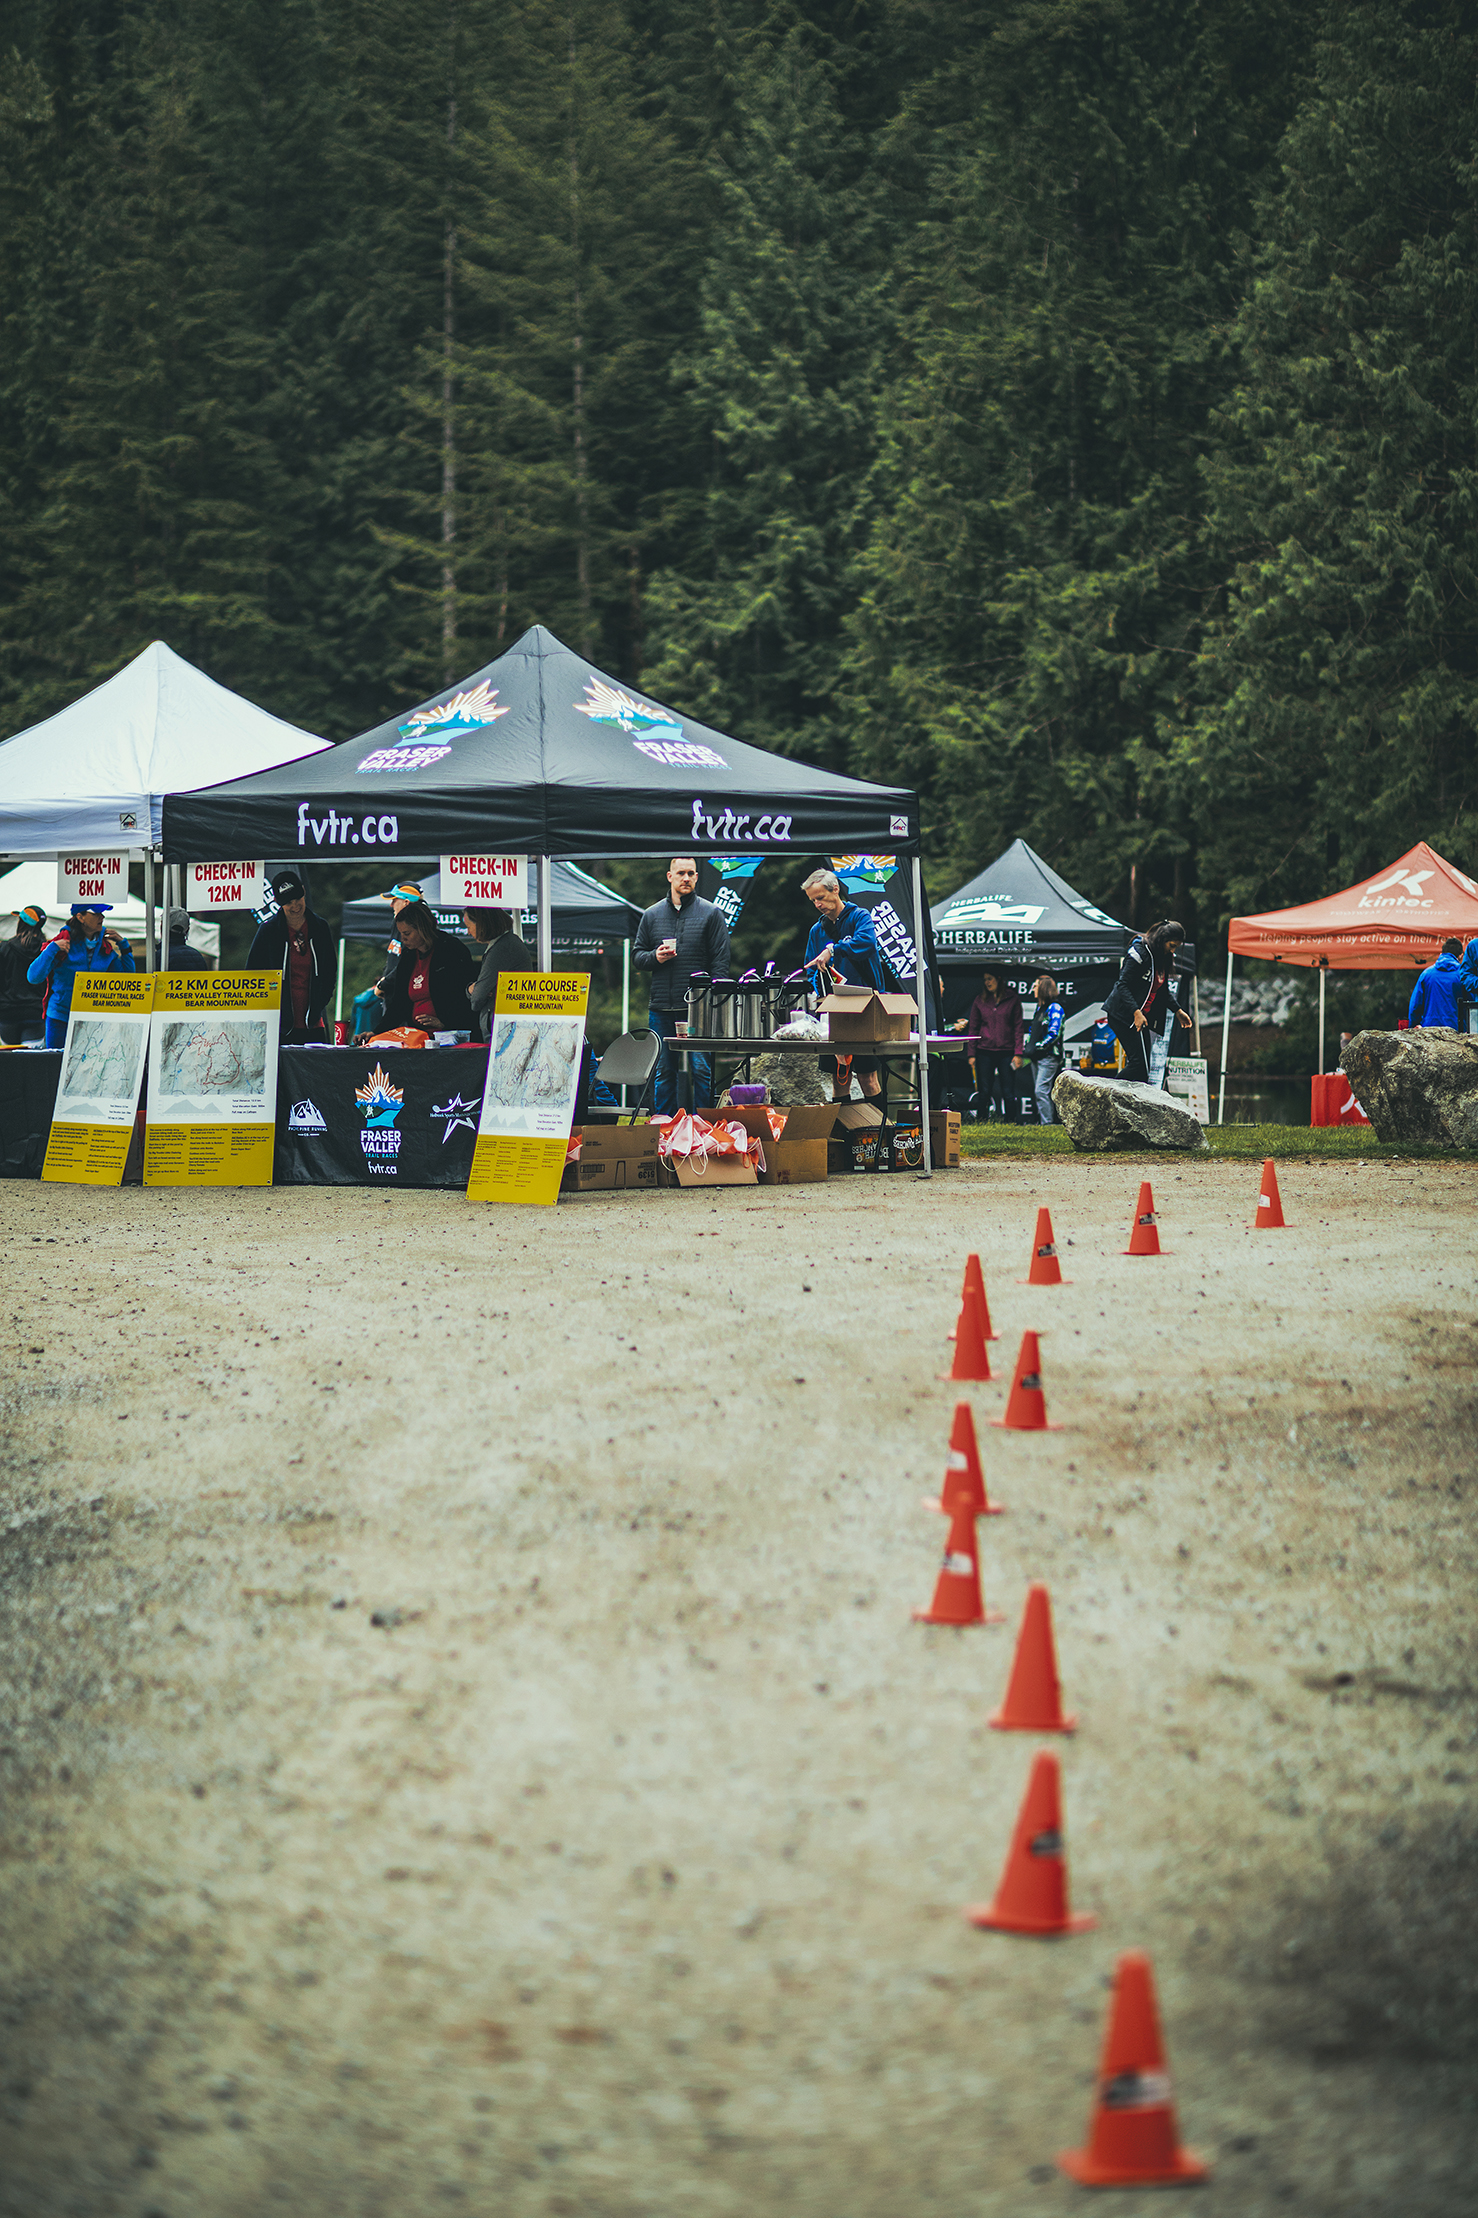 Fraser Valley Trail Races - Bear Mountain - IMG_1330 by Brice Ferre Studio - Vancouver Portrait Adventure and Athlete Photographer.jpg